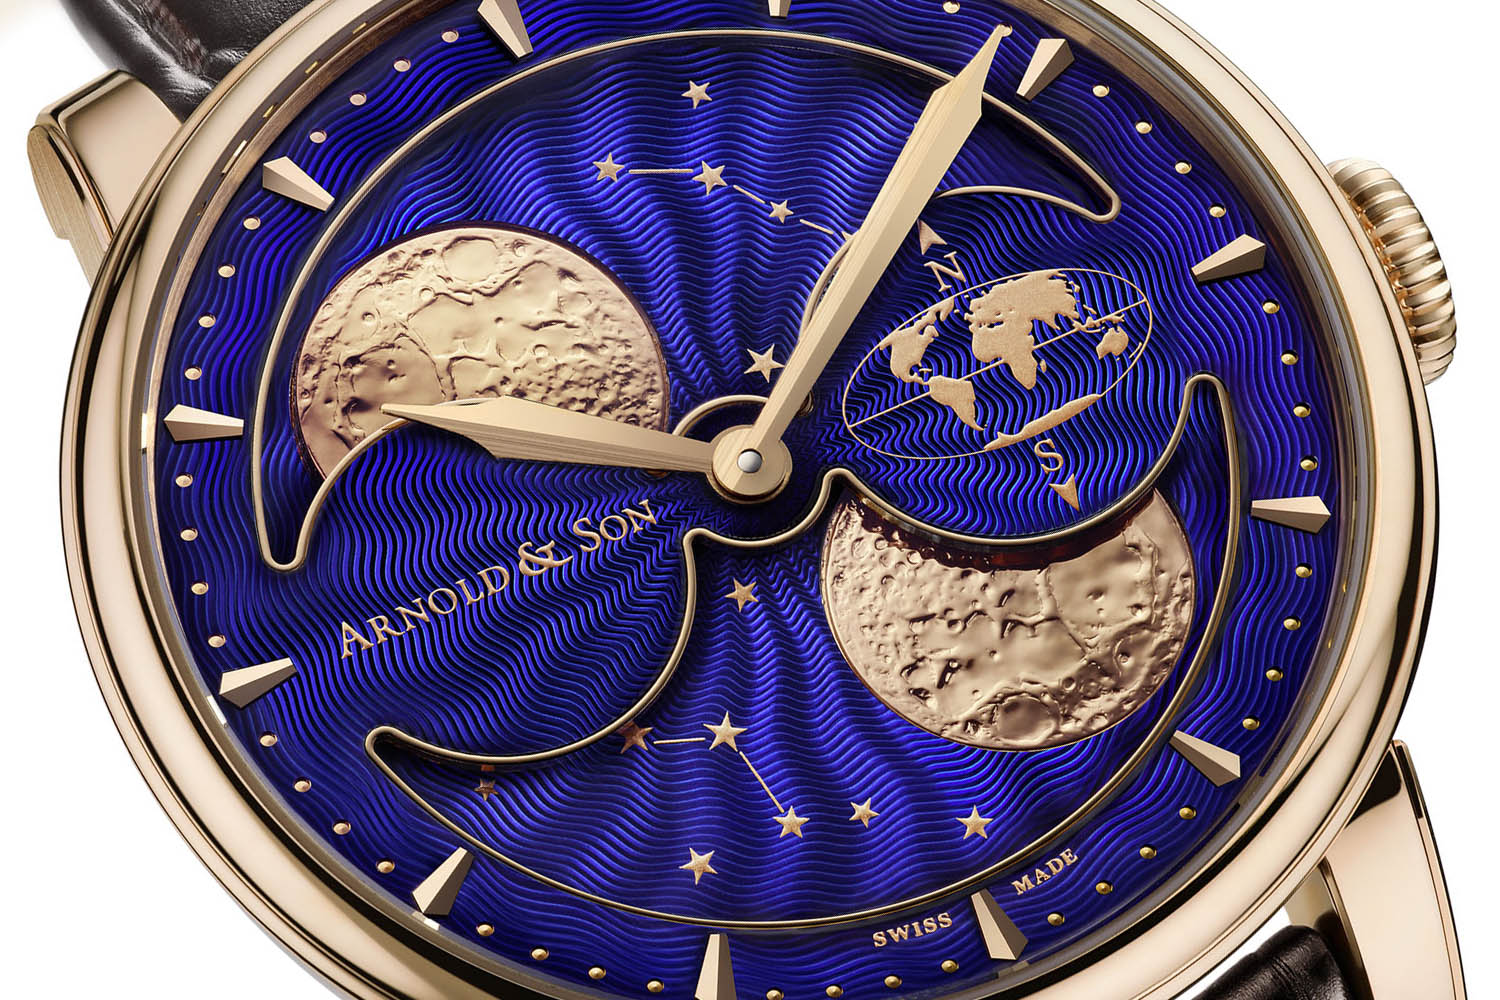 HM Double Hemisphere Perpetual Moon, Arnold & Son